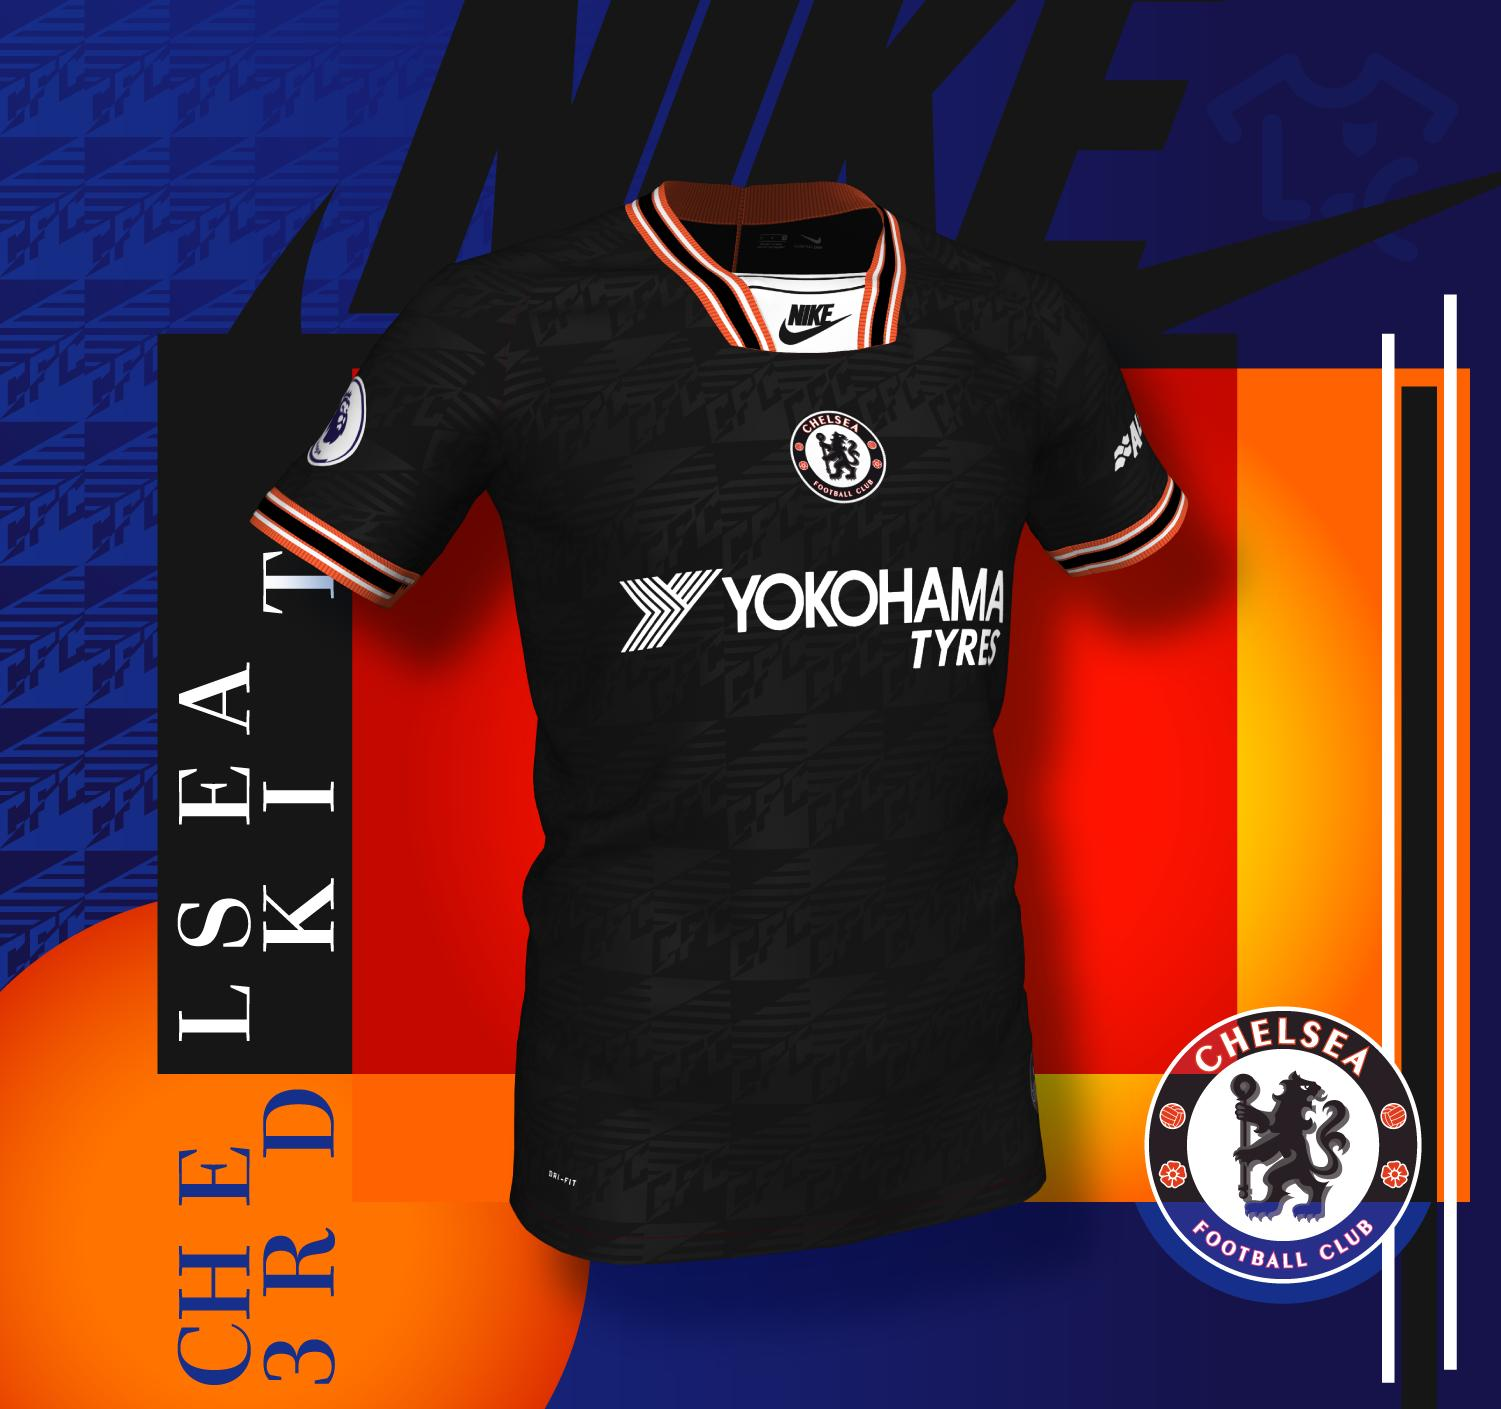 9f47809d6bb Nike Chelsea 2019-20 Third Kit Prediction By La Casaca - Footy Headlines